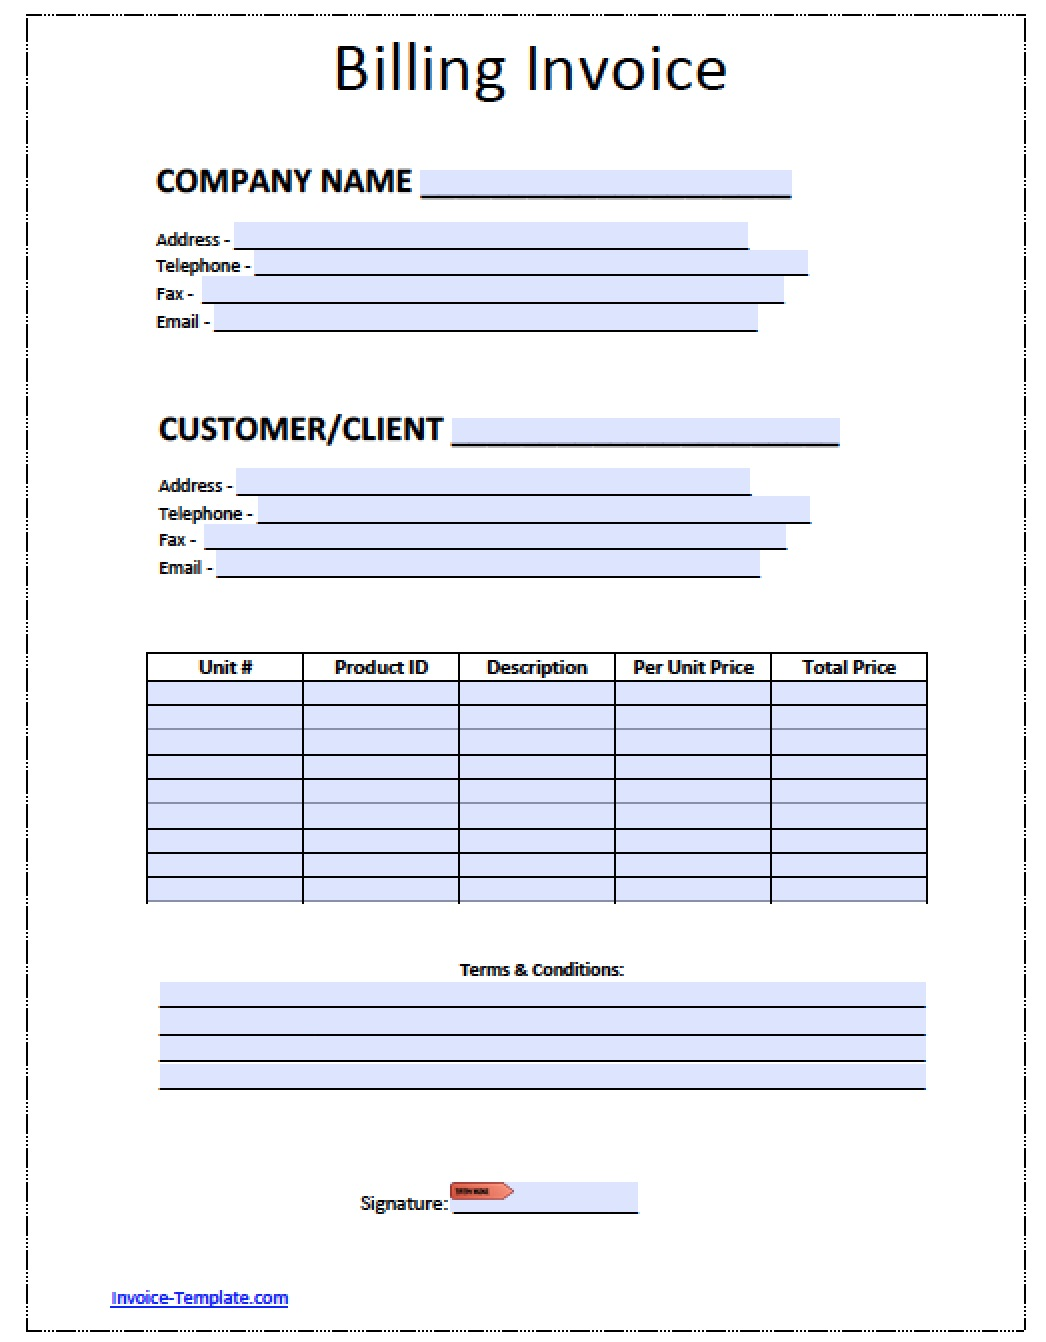 Darkfaderus  Surprising Billing Invoice Invoices Faq U Cloudflare Support Billing  With Inspiring Free Billing Invoice Template  Excel  Pdf  Word Doc  Billing With Cool Invoice Price New Cars Also Example Of Invoices In Addition Immigration Visa Invoice Payment Center And Invoice Funding Companies As Well As Invoice Approval Stamp Additionally Are Paypal Invoices Safe From Happytomco With Darkfaderus  Inspiring Billing Invoice Invoices Faq U Cloudflare Support Billing  With Cool Free Billing Invoice Template  Excel  Pdf  Word Doc  Billing And Surprising Invoice Price New Cars Also Example Of Invoices In Addition Immigration Visa Invoice Payment Center From Happytomco